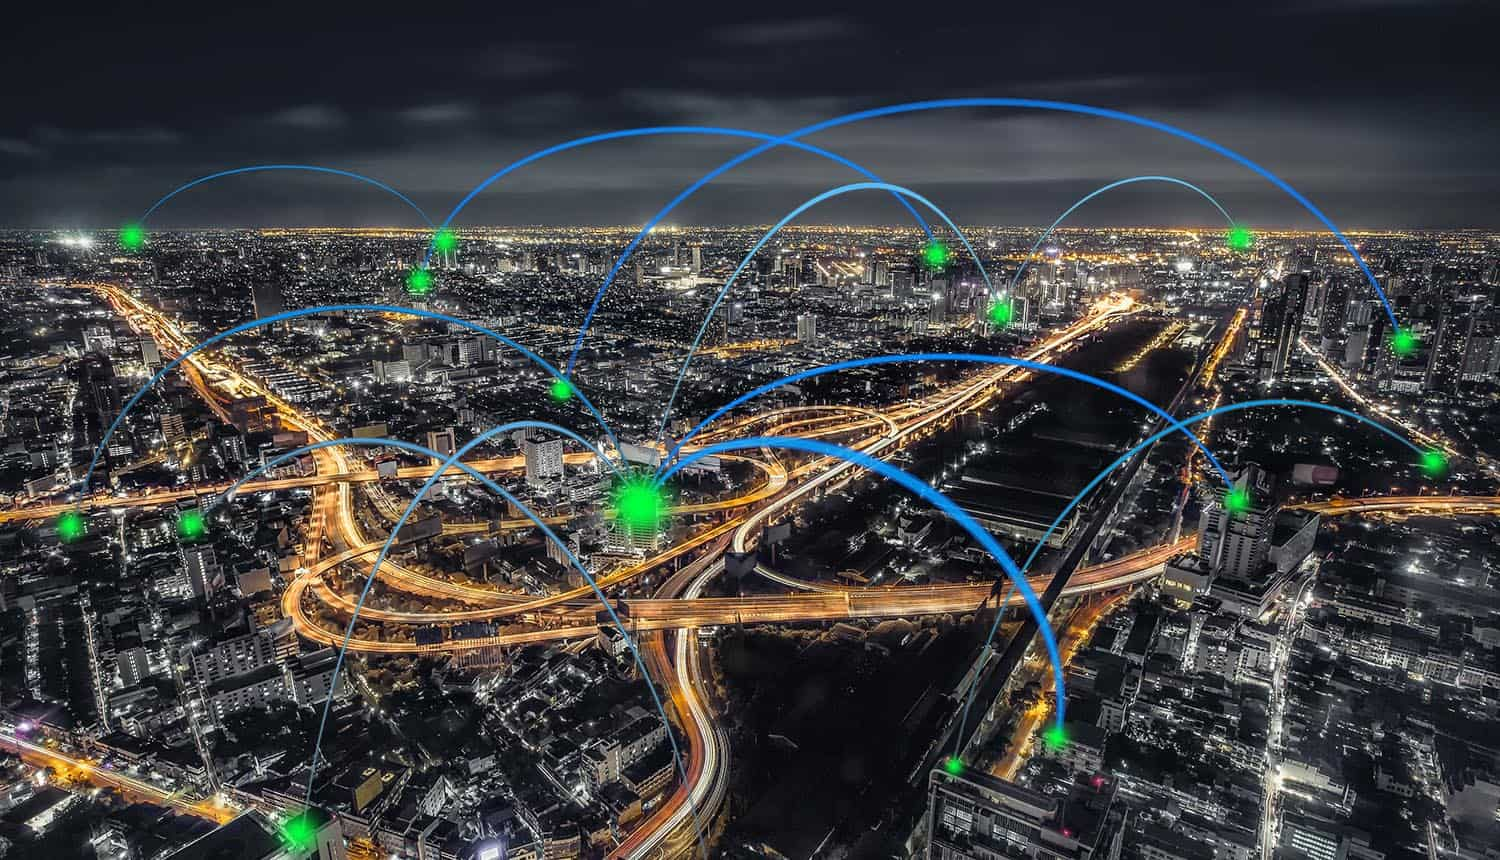 Downtown at night showing proxies and VPN connections from the top of skyscrapers